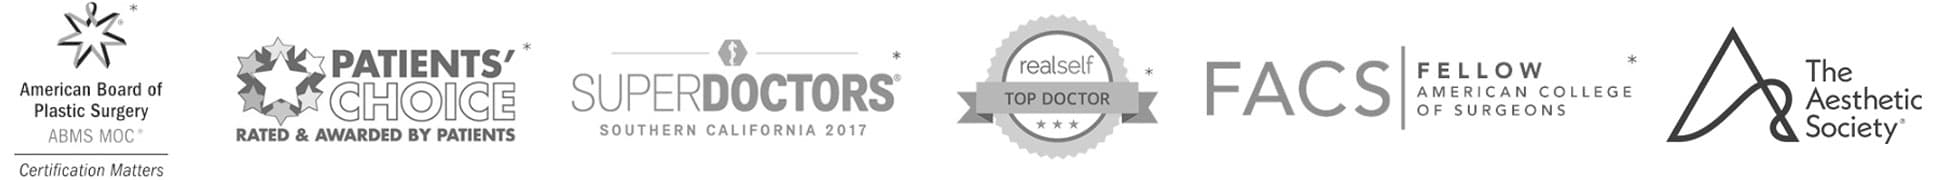 Logo's of Associations that South Bay Plastic Surgery belongs to